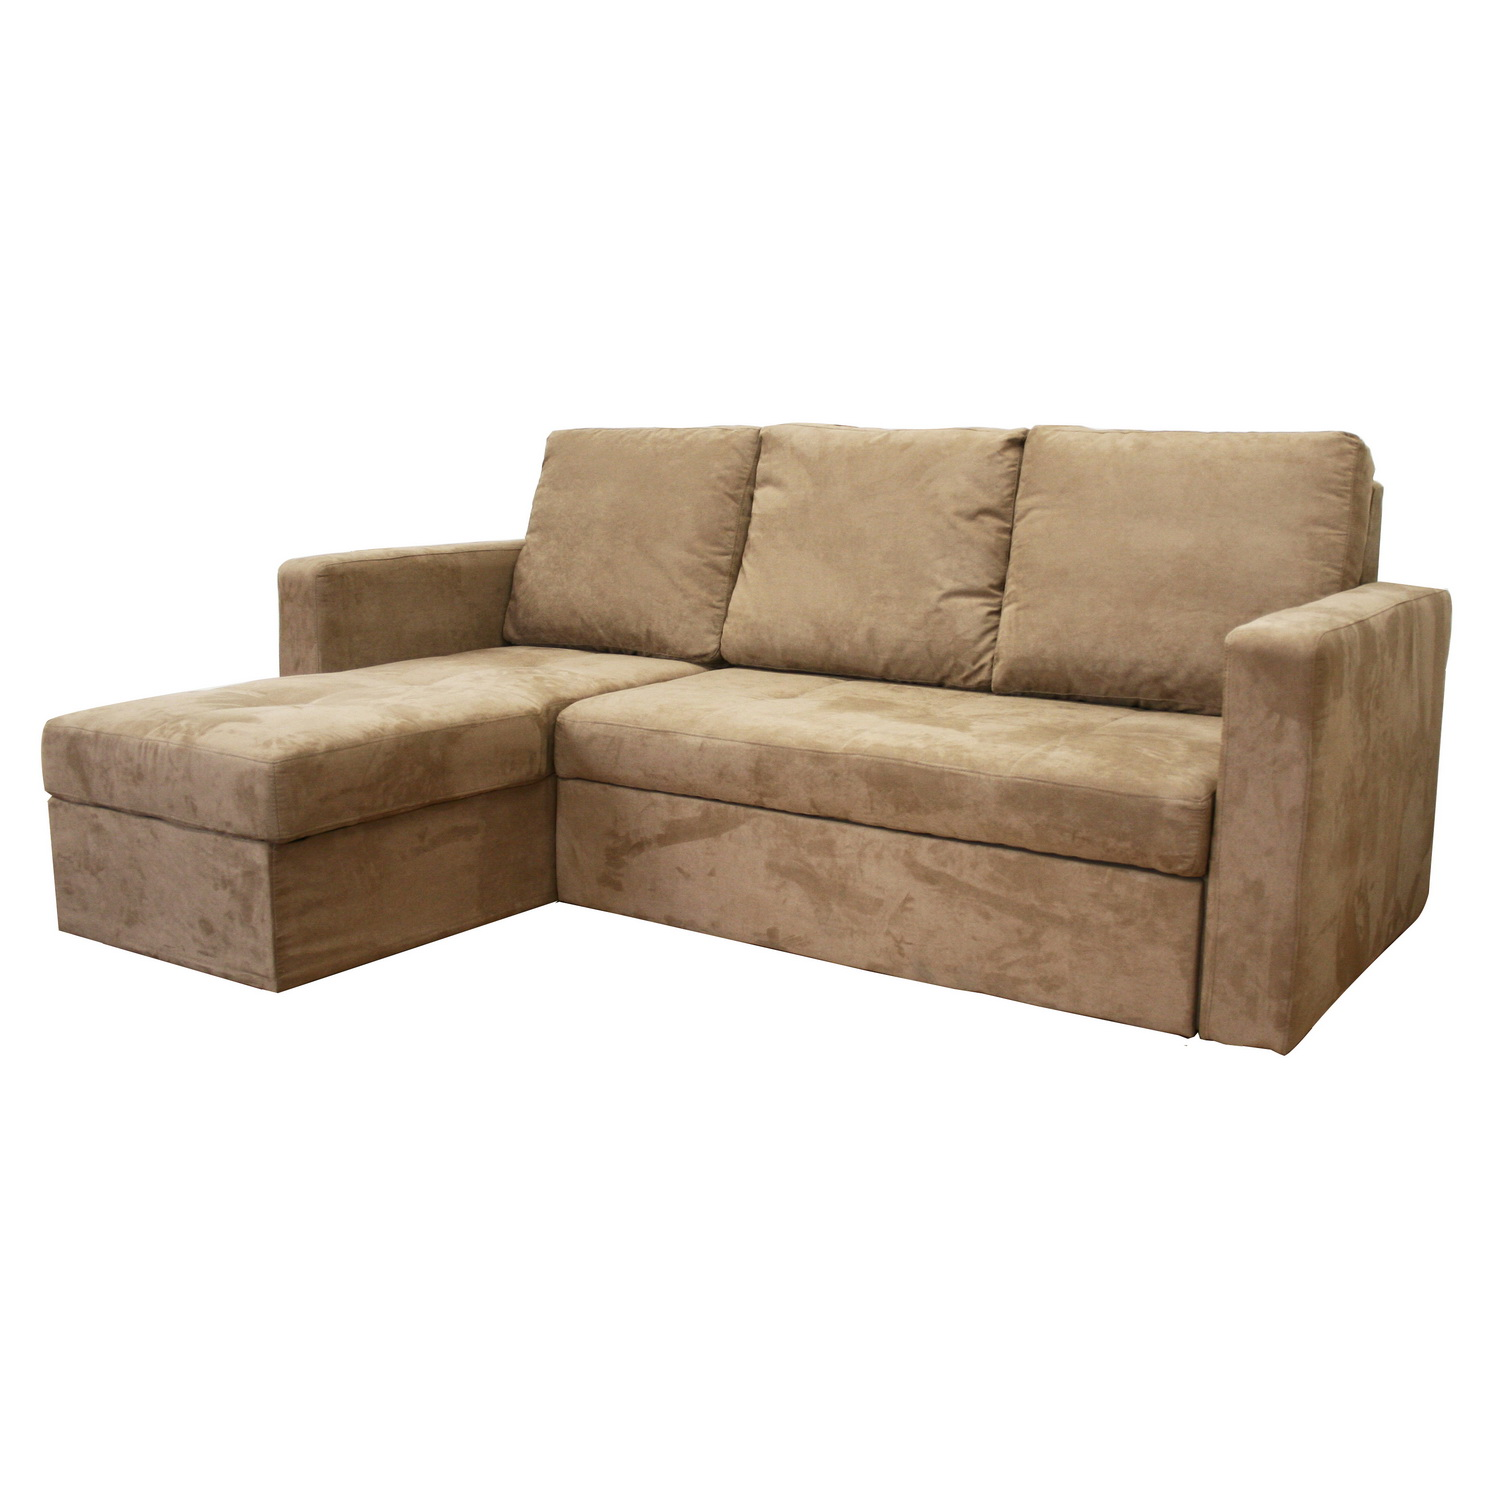 Sofas loveseats for Furniture sofas and couches